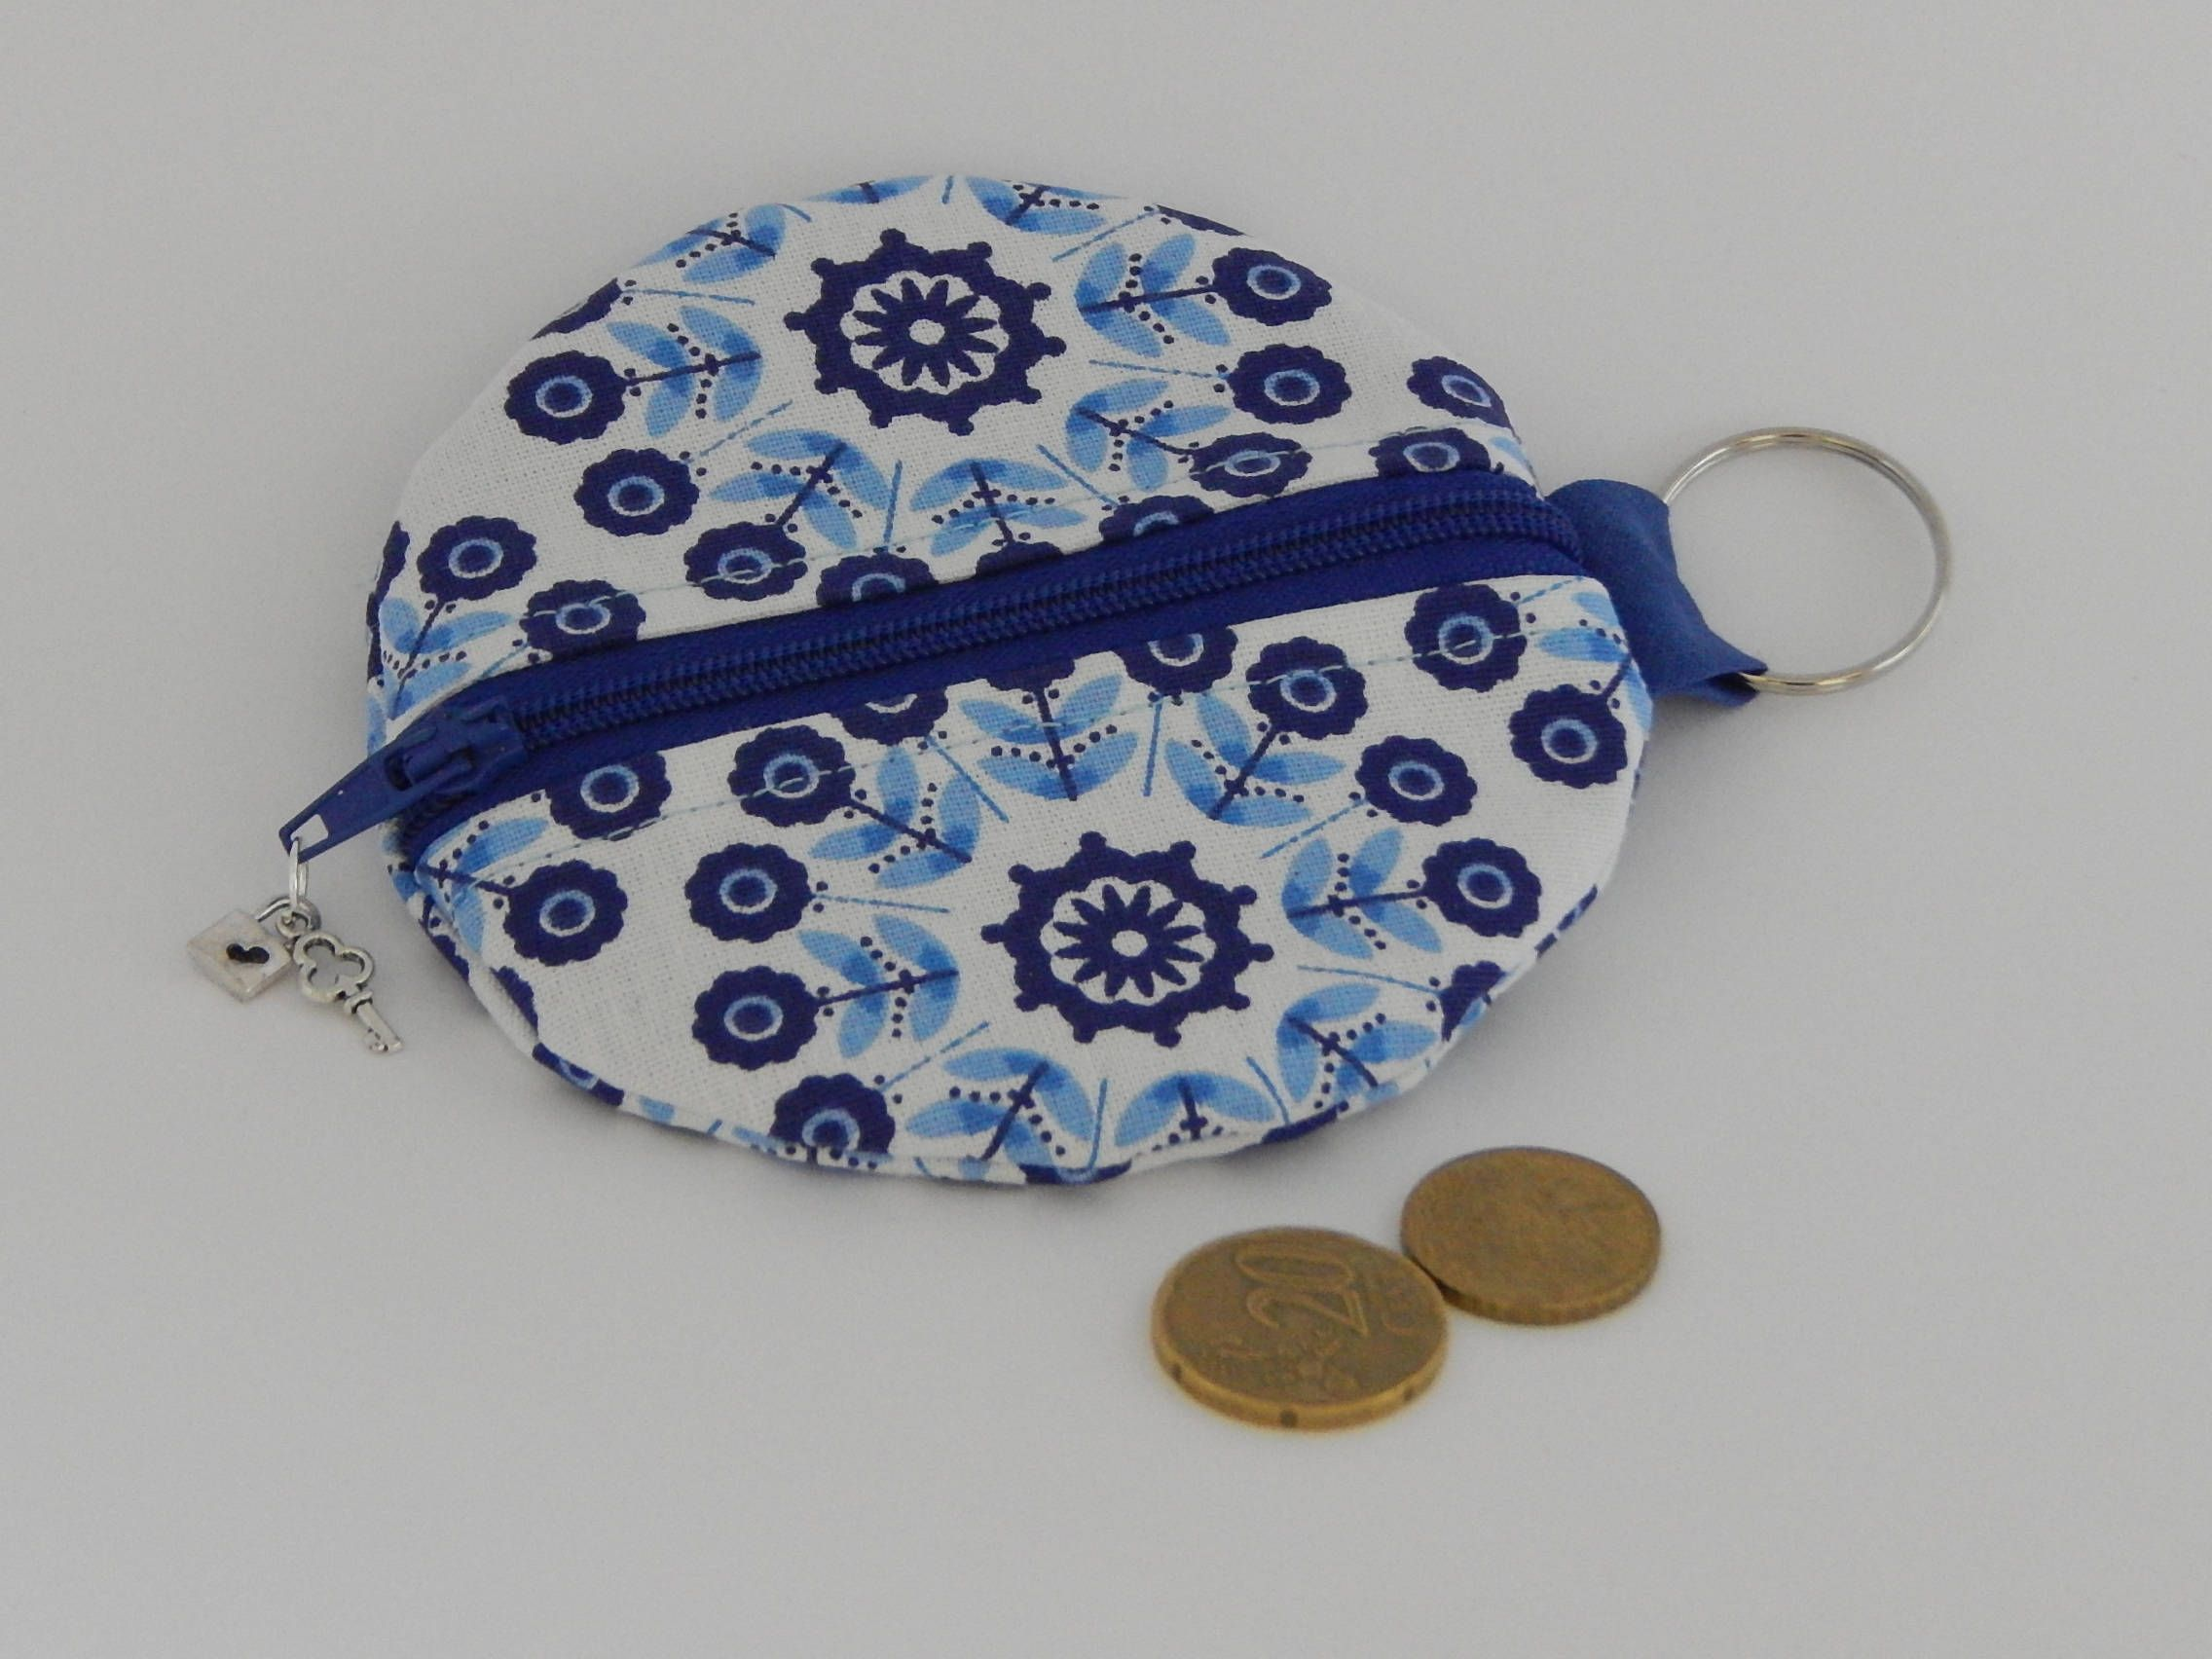 round coin purse / case for your MP3 earplugs or hand spinner in ...